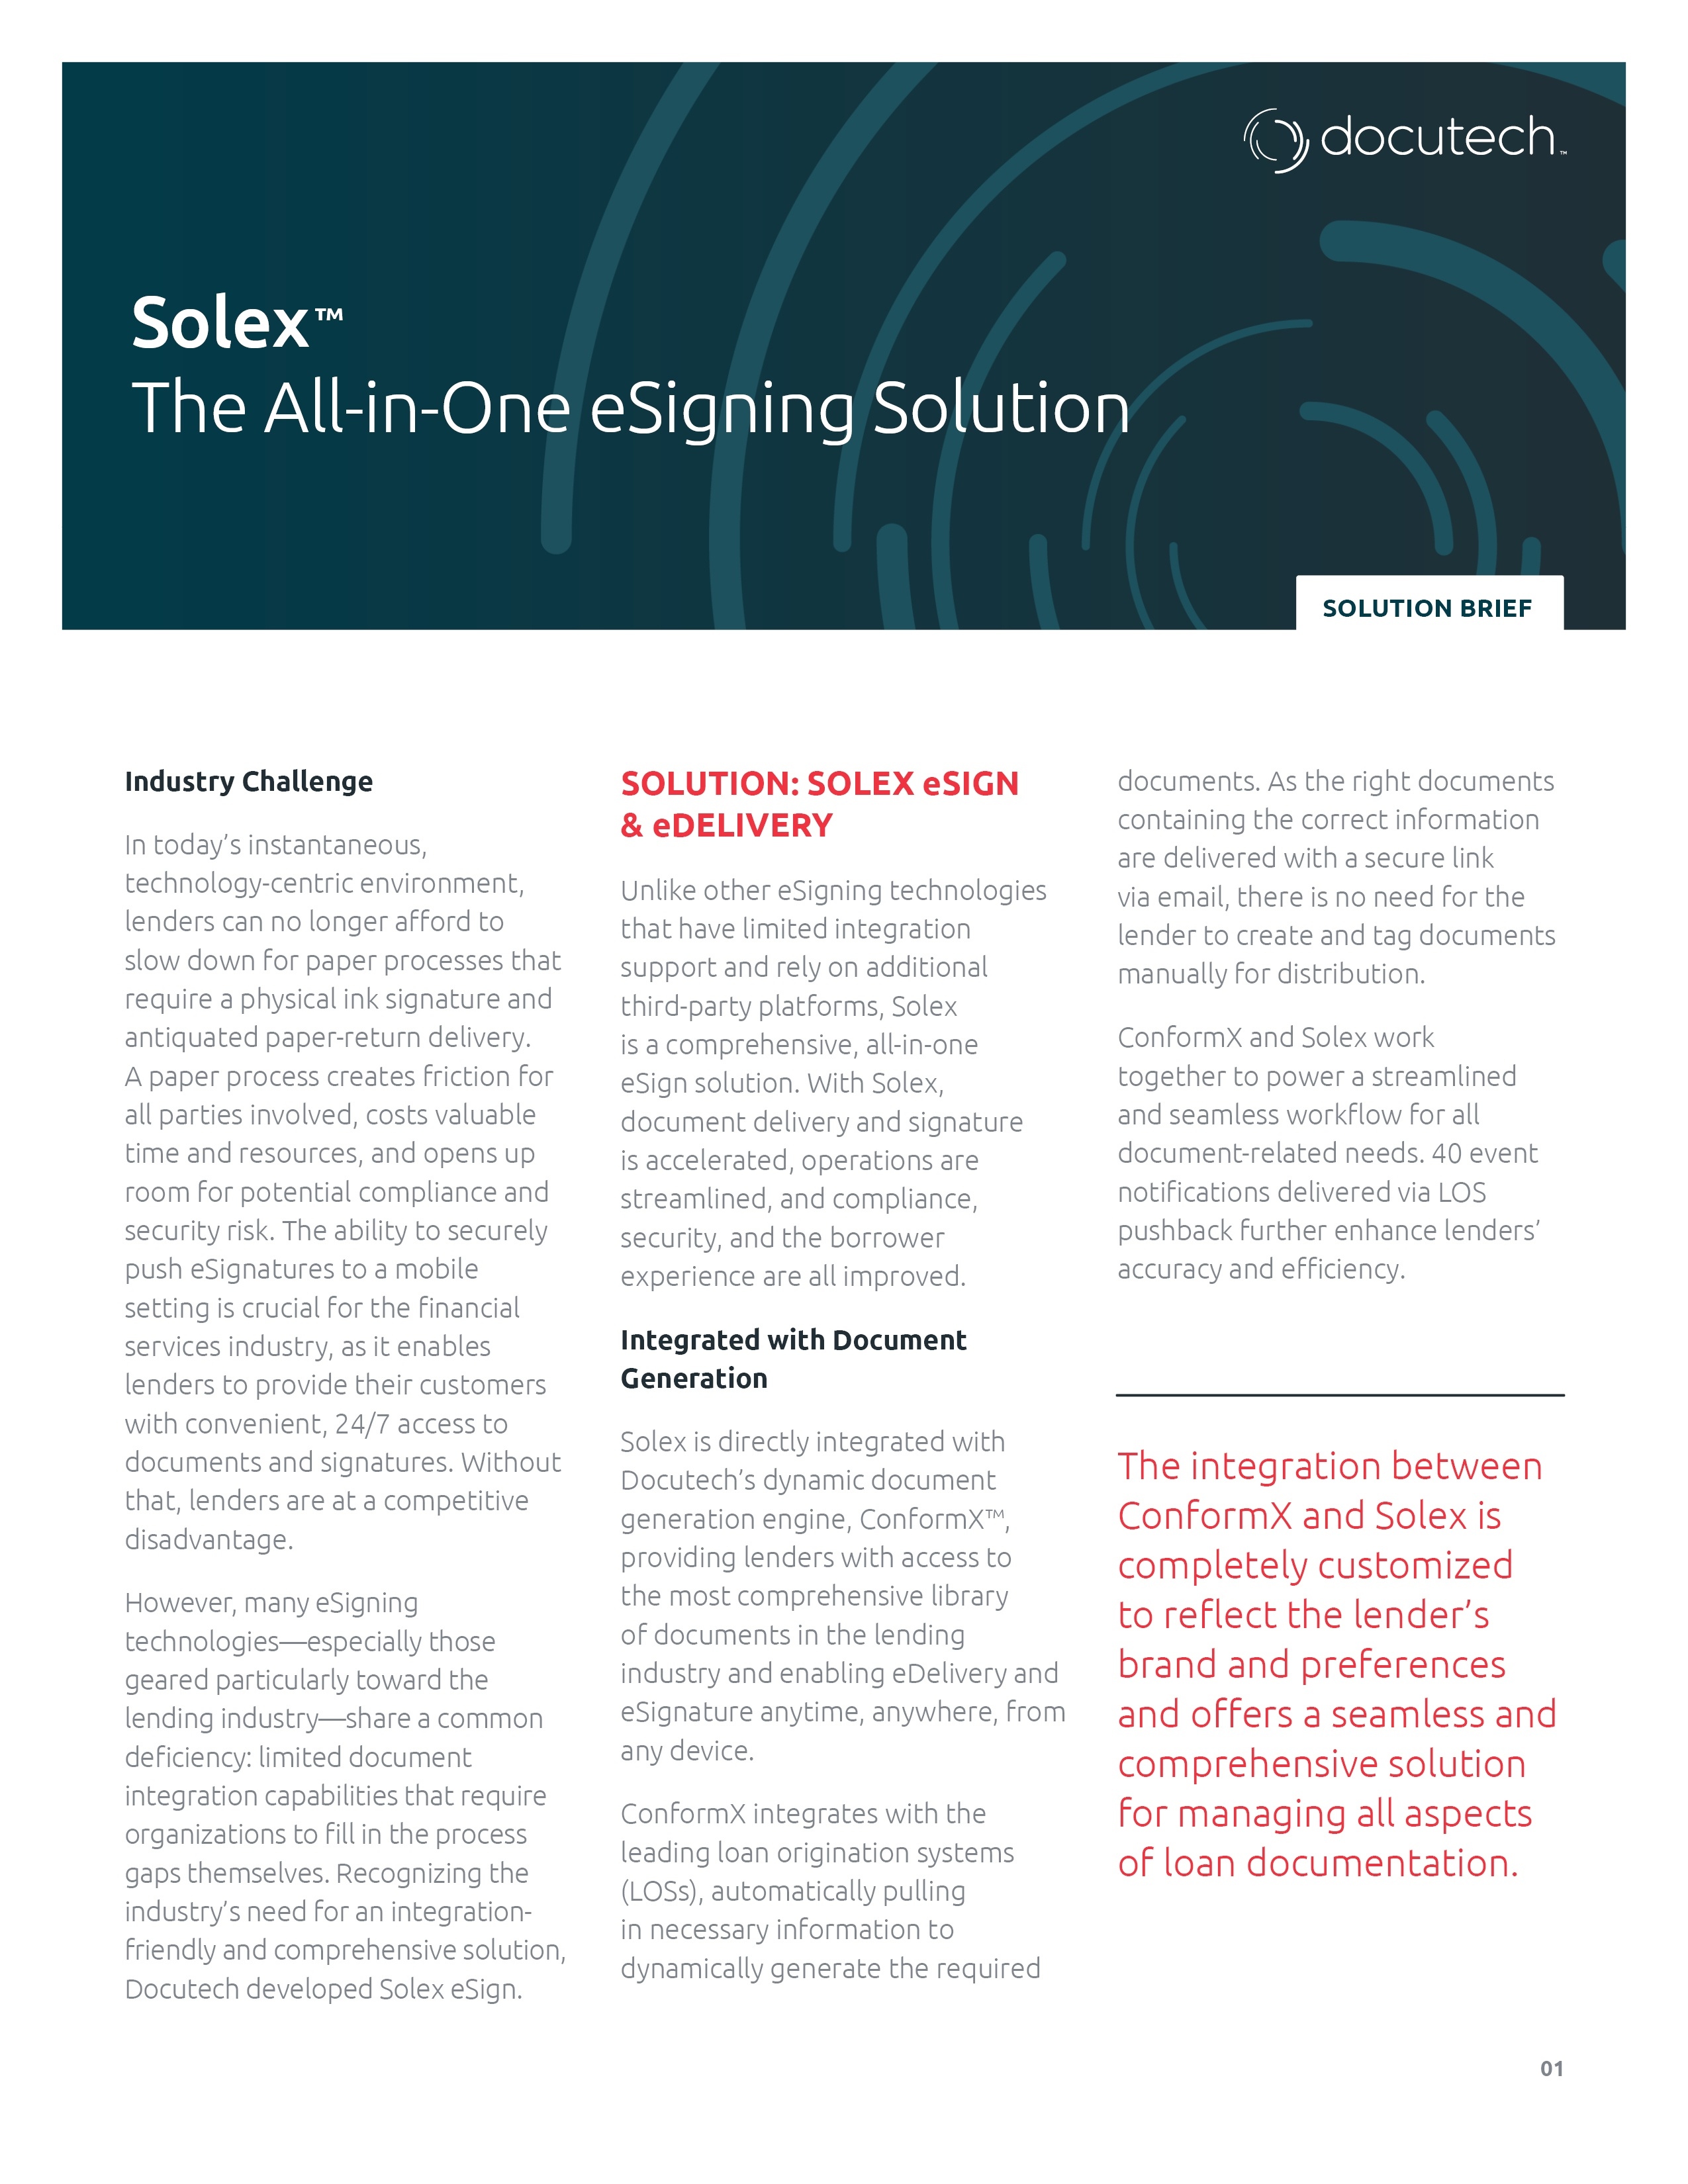 Solex eSign Solution Brief_9_29_2017.jpg